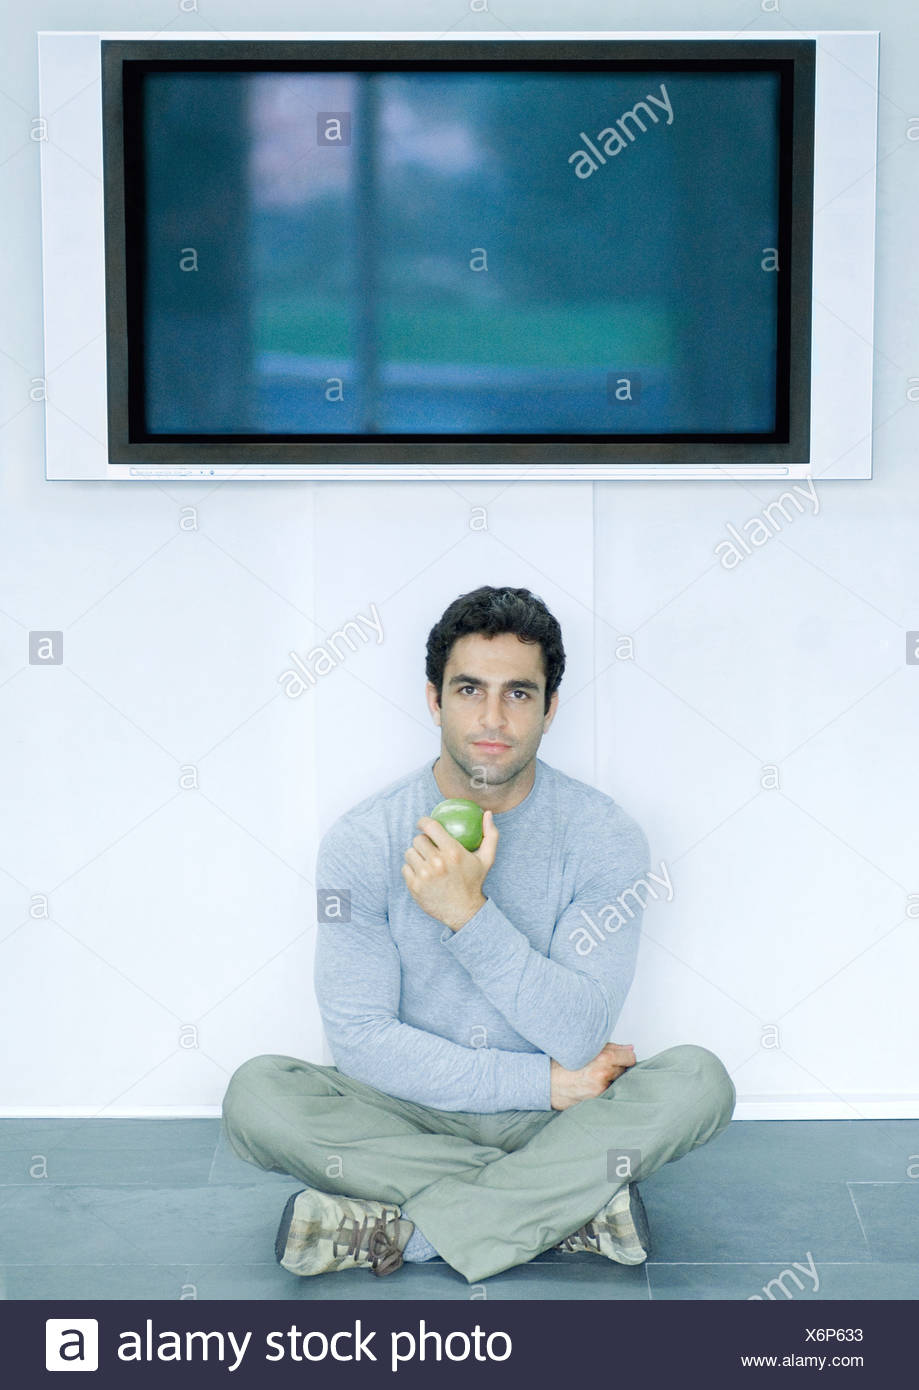 Man sitting on floor under wide screen TV, holding apple - Stock Image